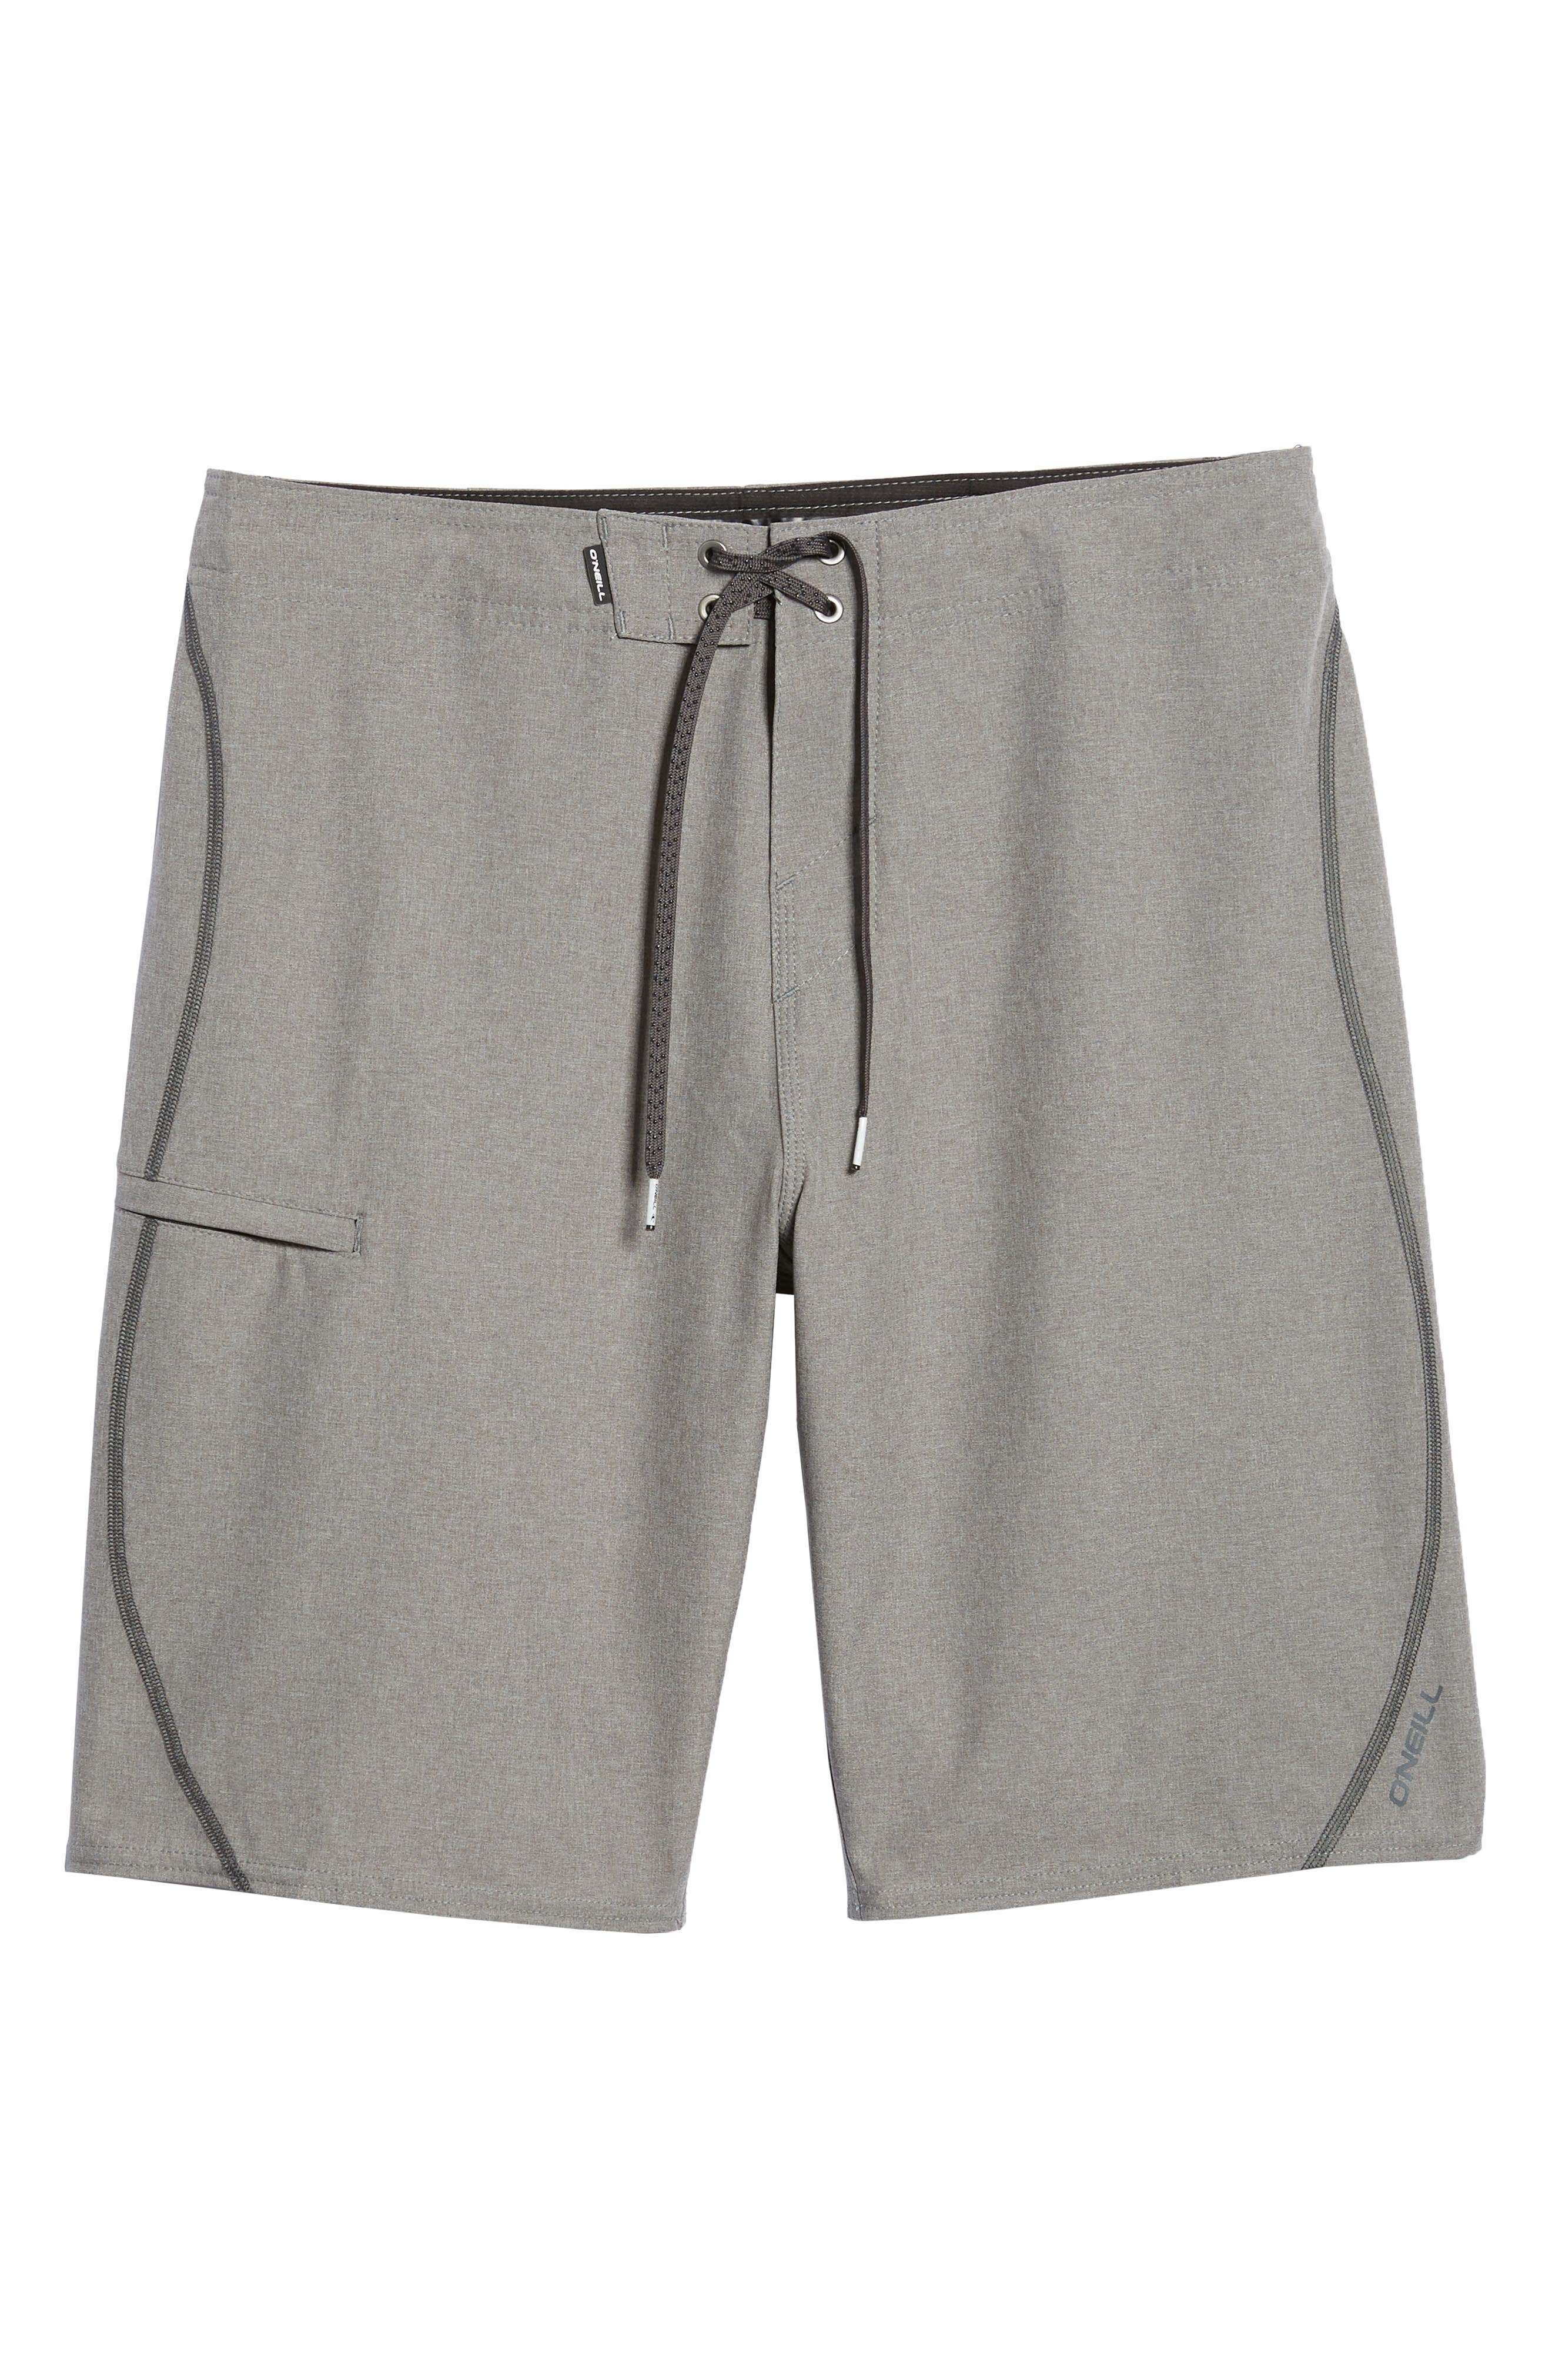 Hyperfreak S-Seam Board Shorts,                             Alternate thumbnail 6, color,                             Heather Grey